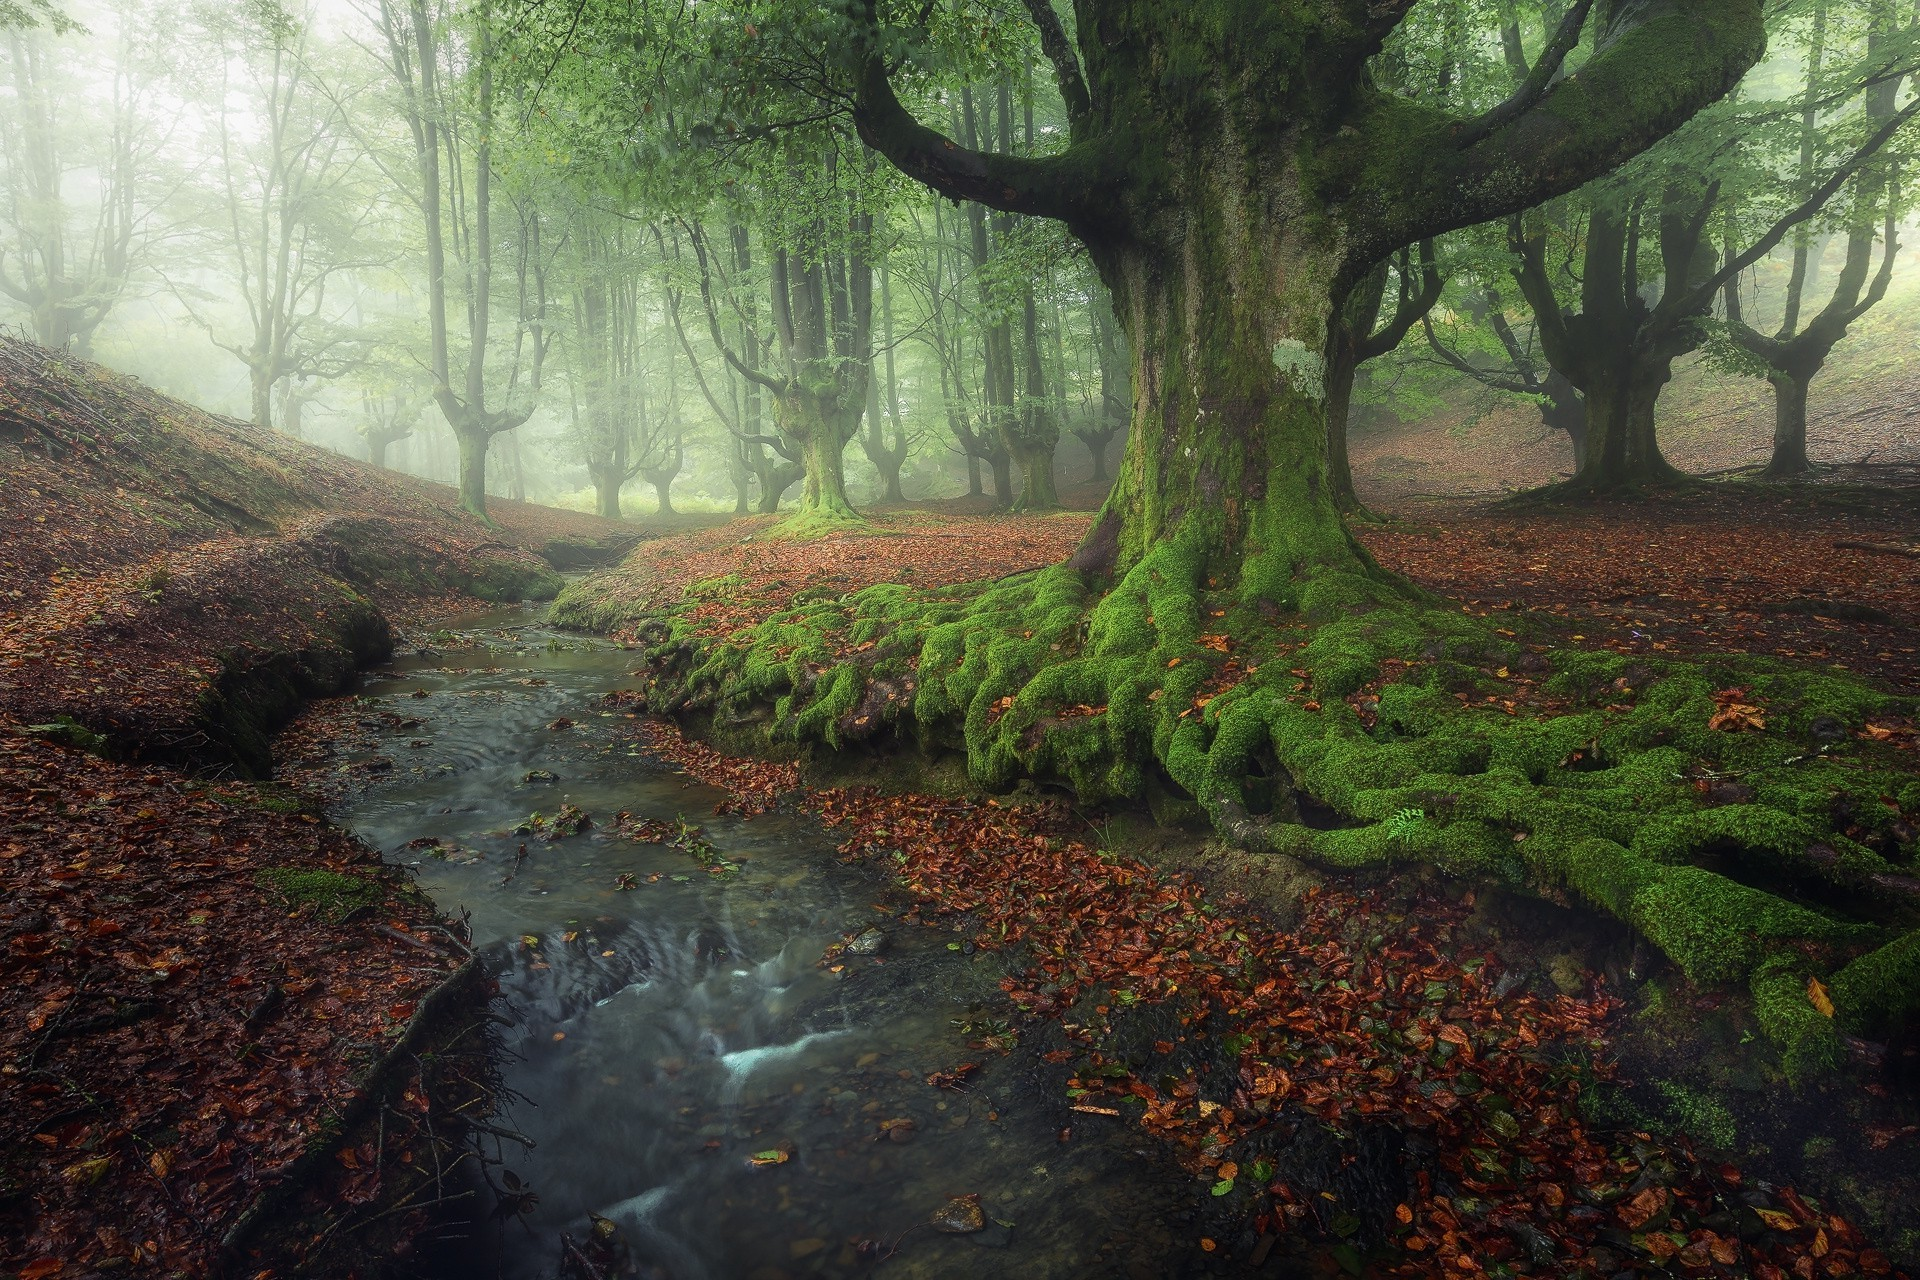 Uhd Wallpapers Fall Nature Landscape Forest Creeks Sunrise Mist Moss